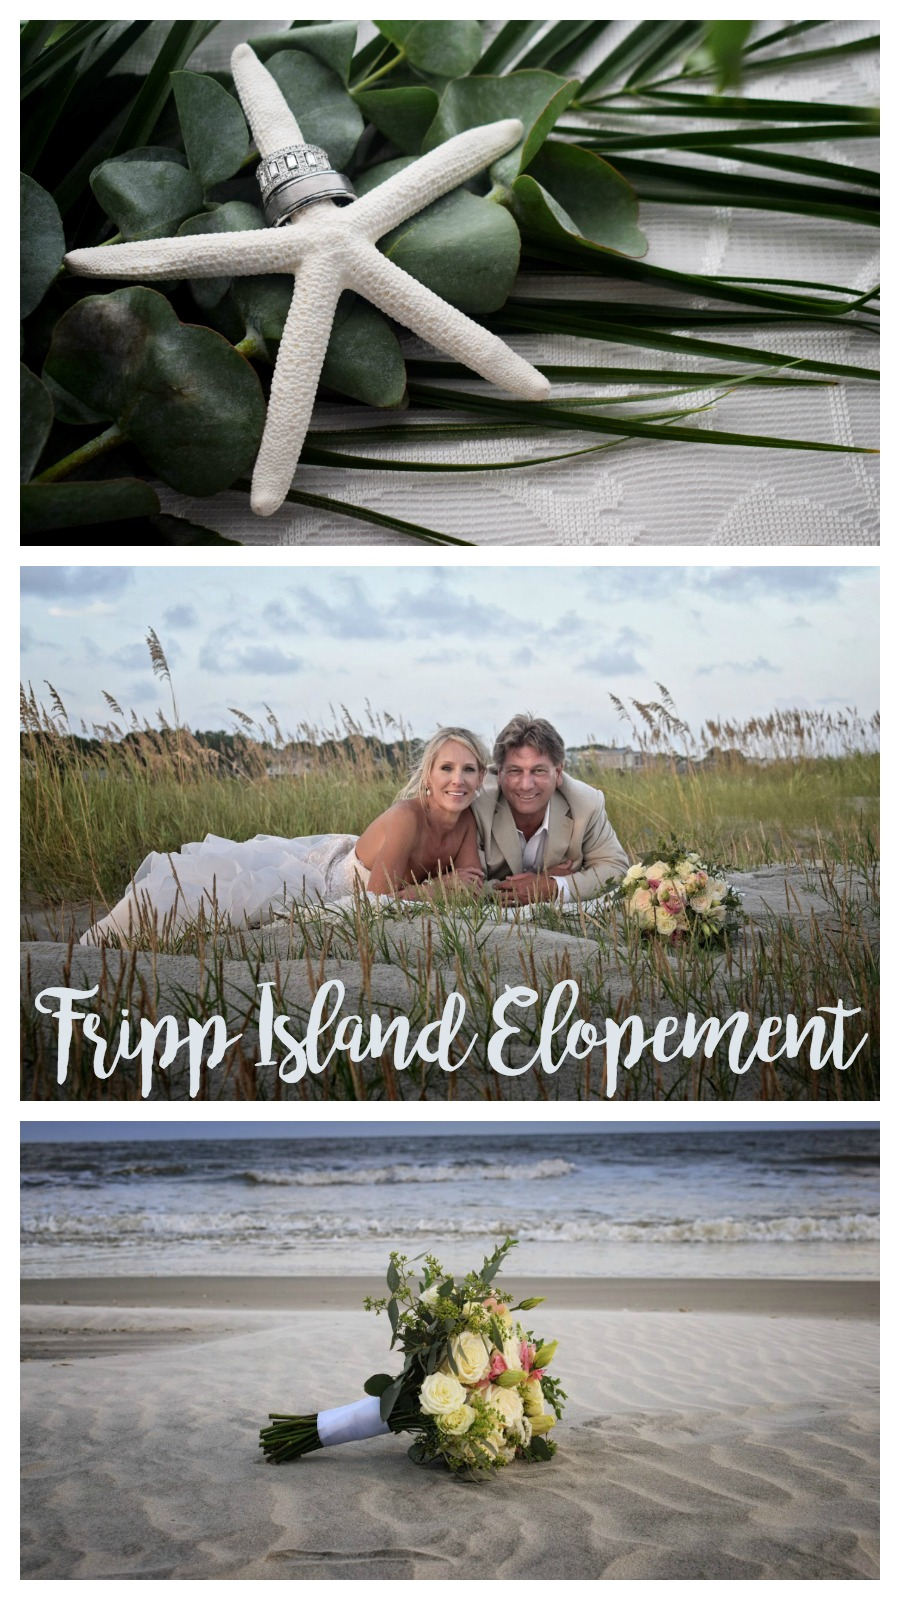 Marian and Jeff: Oceanfront Fripp Island Elopement | Palmetto State Weddings | Dandelion Weddings Photography | South Carolina beach wedding | casual beach wedding inspiration